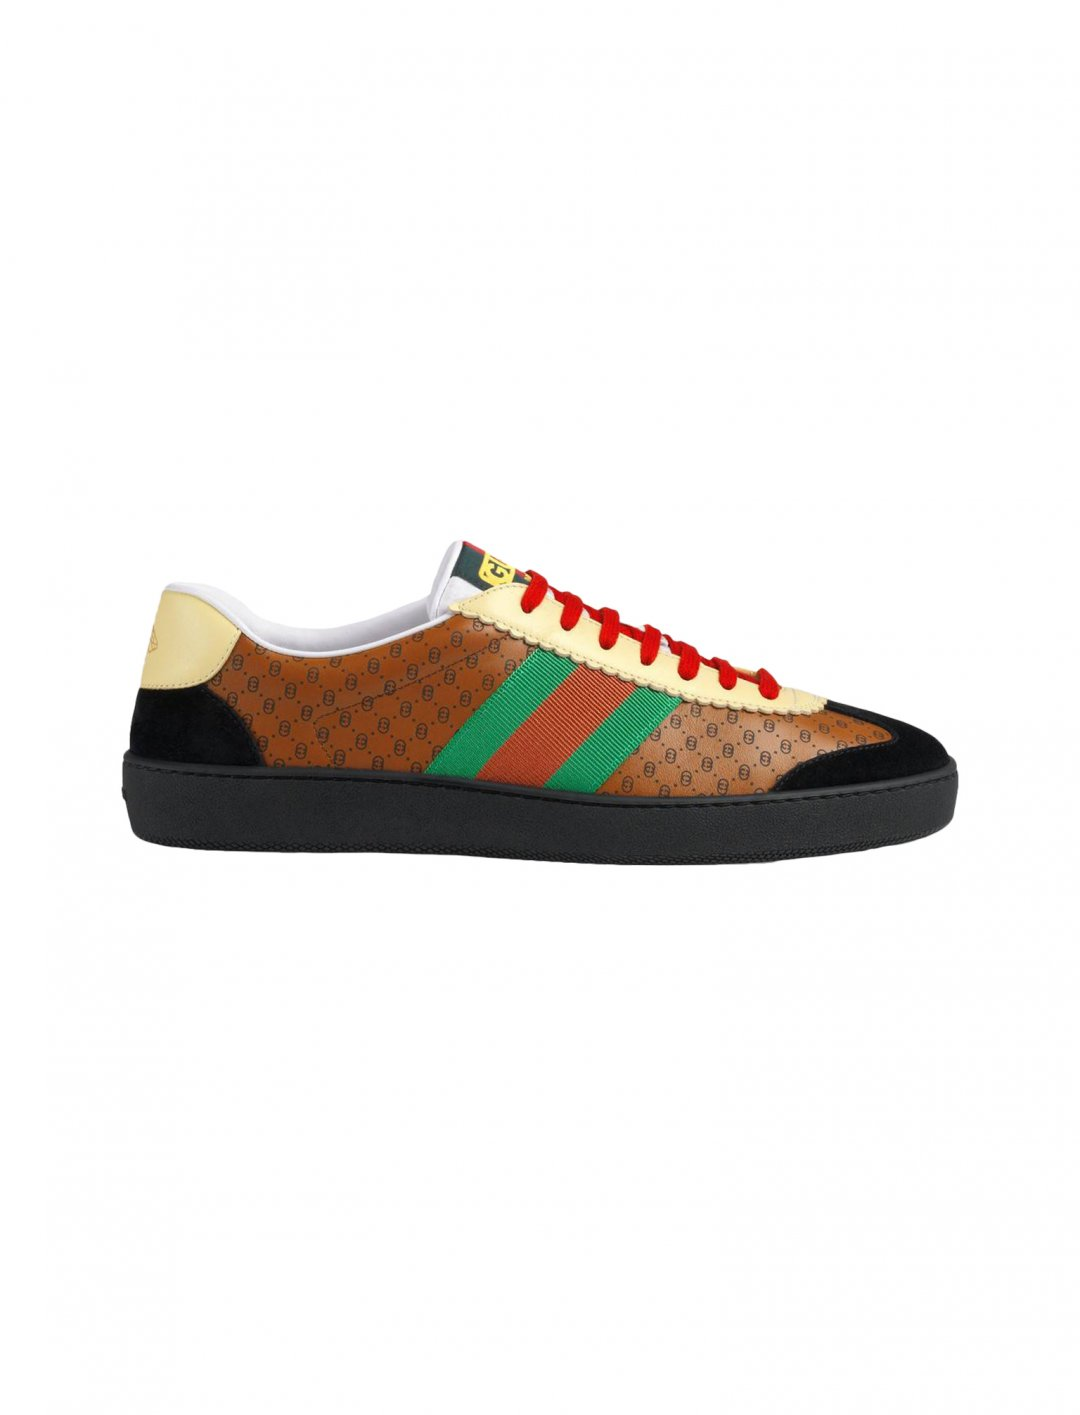 "French Montana's Sneaker {""id"":12,""product_section_id"":1,""name"":""Shoes"",""order"":12} Gucci"